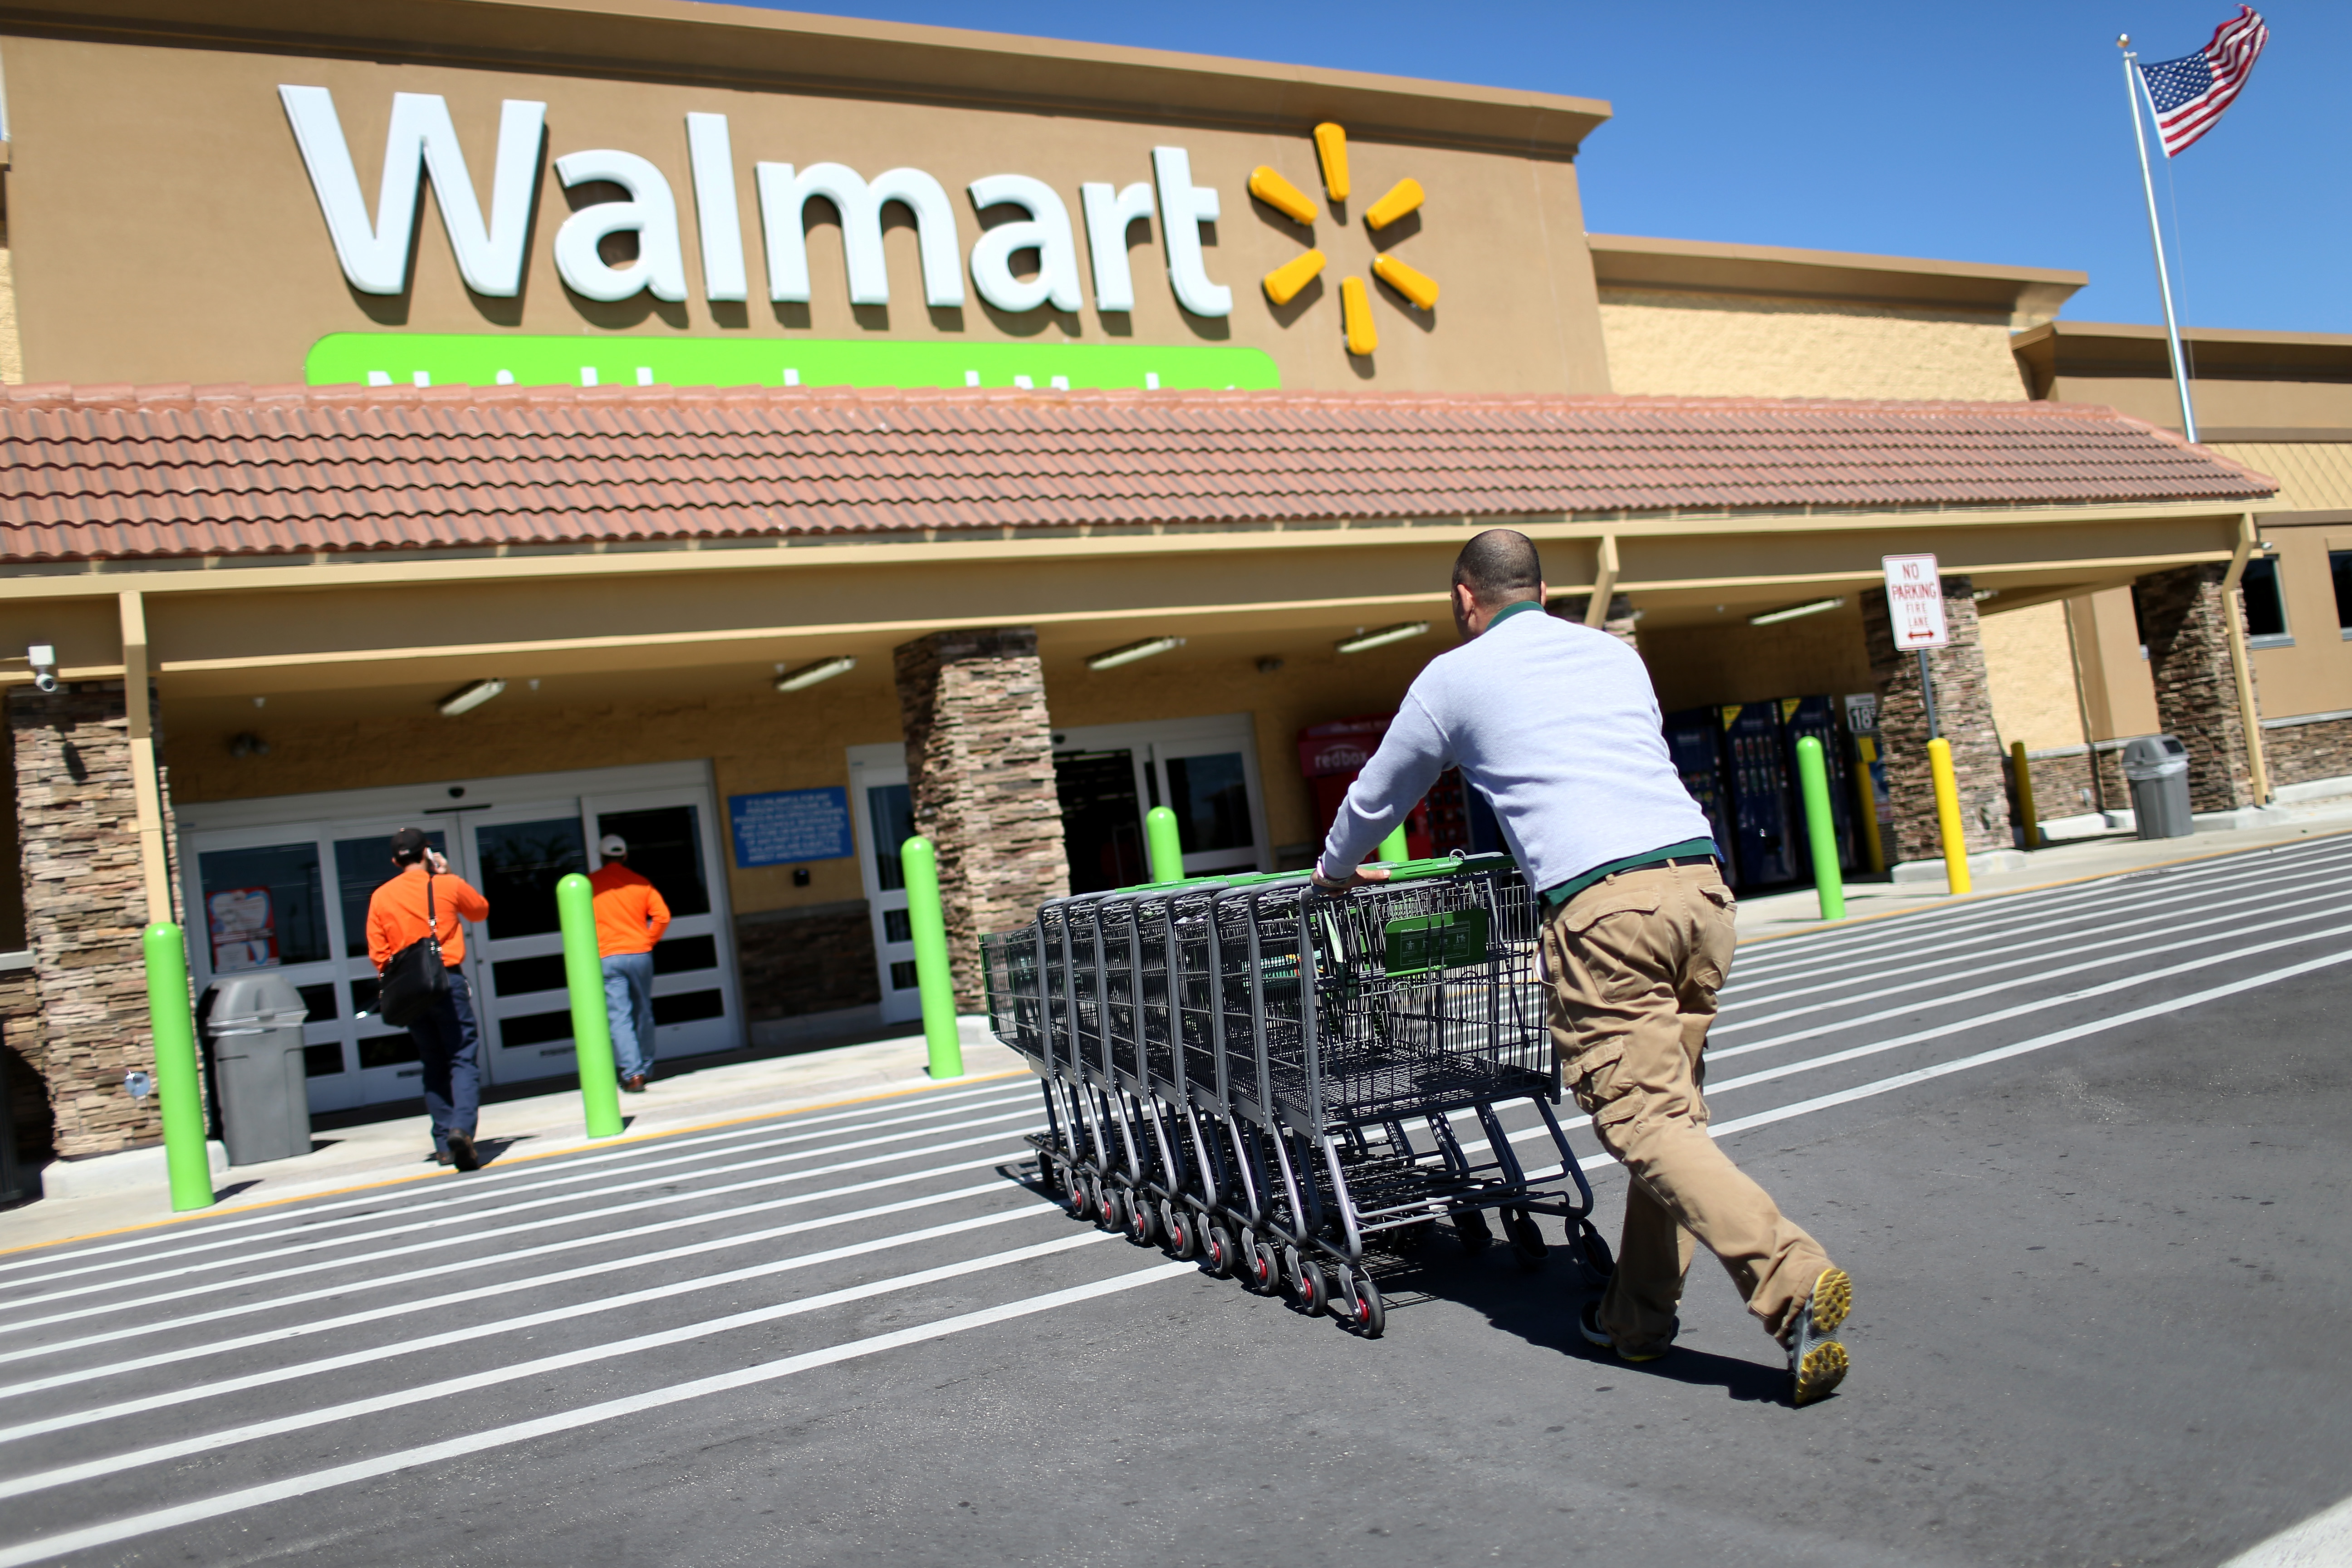 Is there a way to get a price list for the Wal-Mart grocery store?